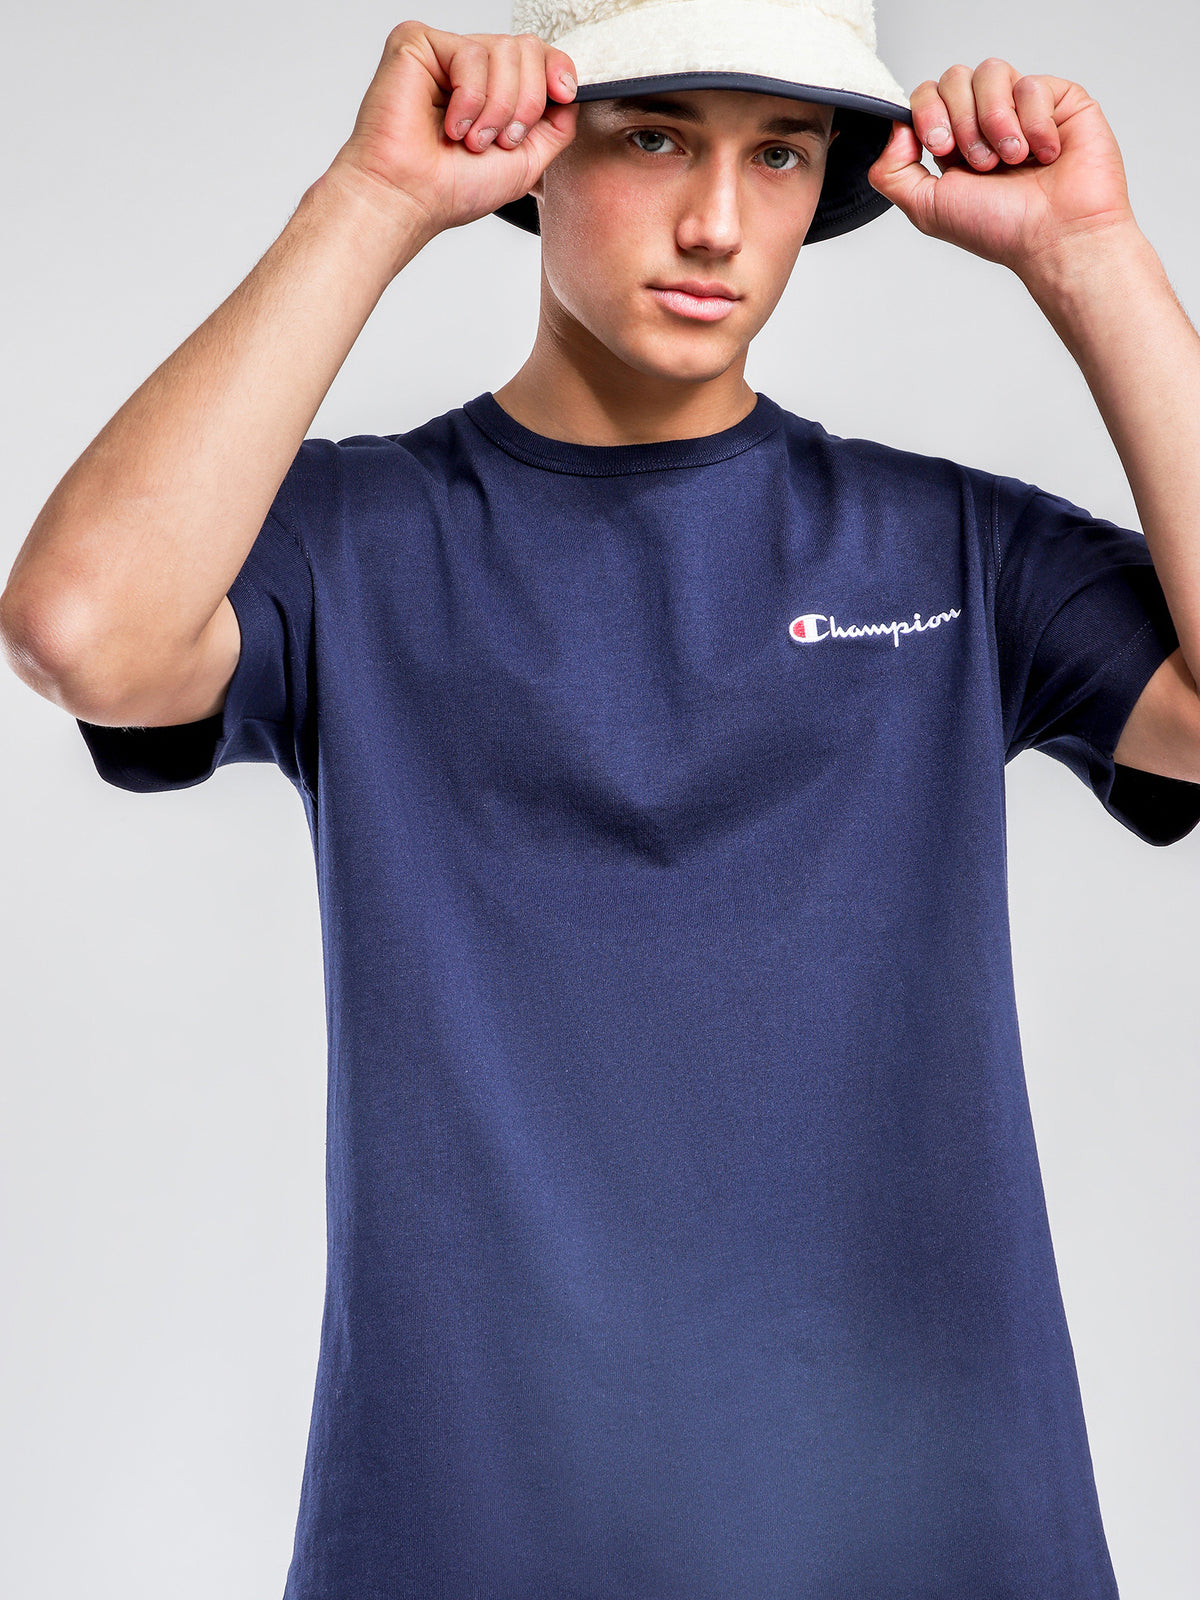 Heritage T-Shirt in Navy